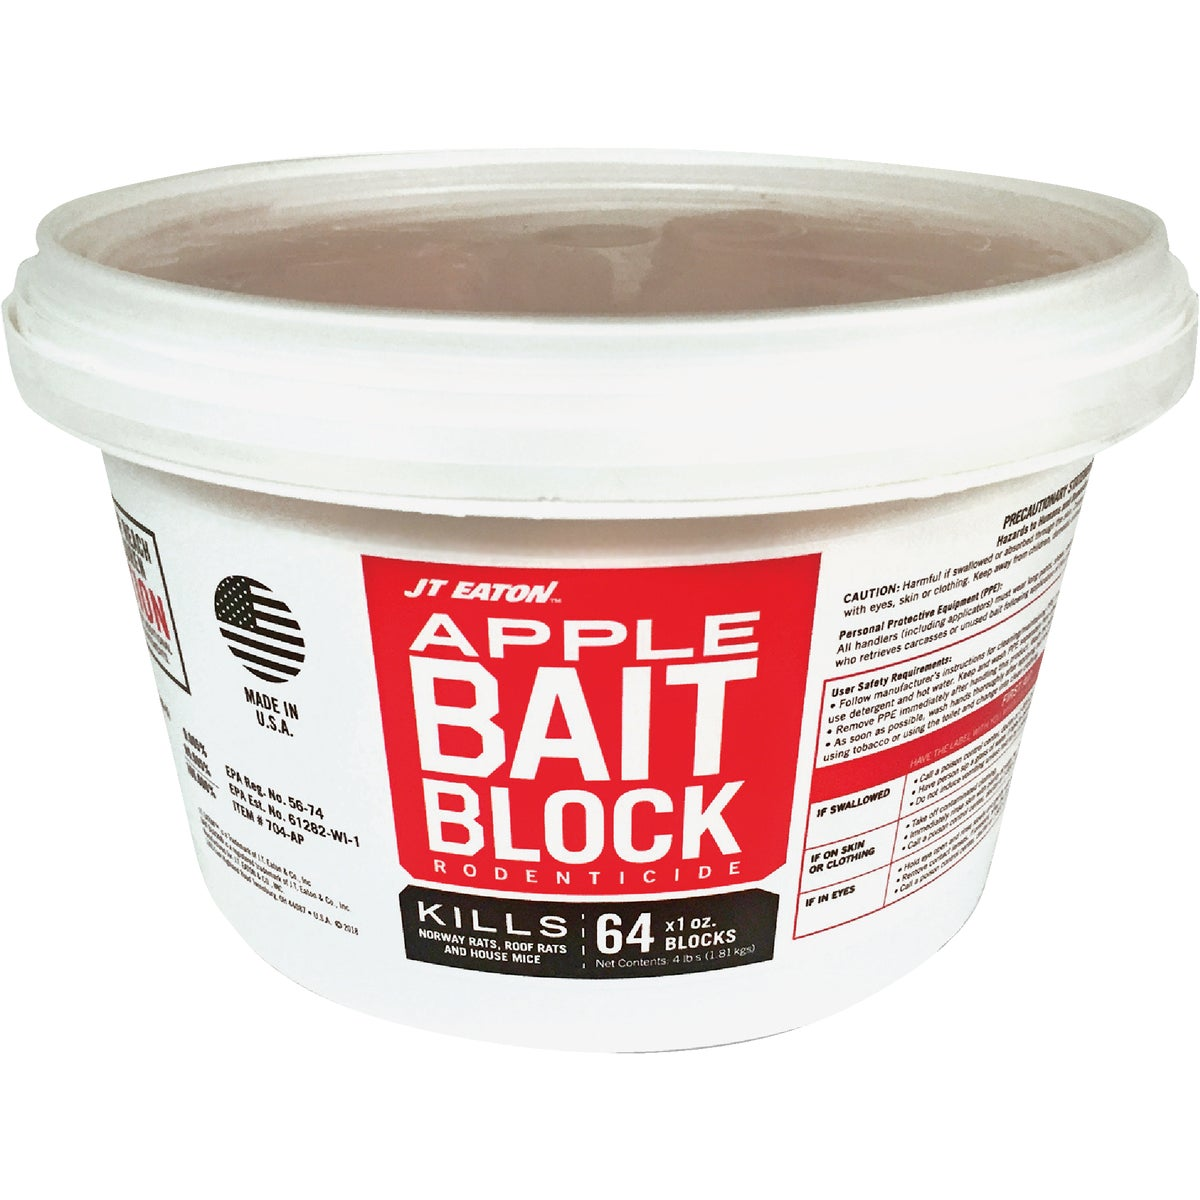 Item 705688, Apple flavored bait block. Features a tamper evident resealable pail. Controls Norway rats, roof rats, and house mice.